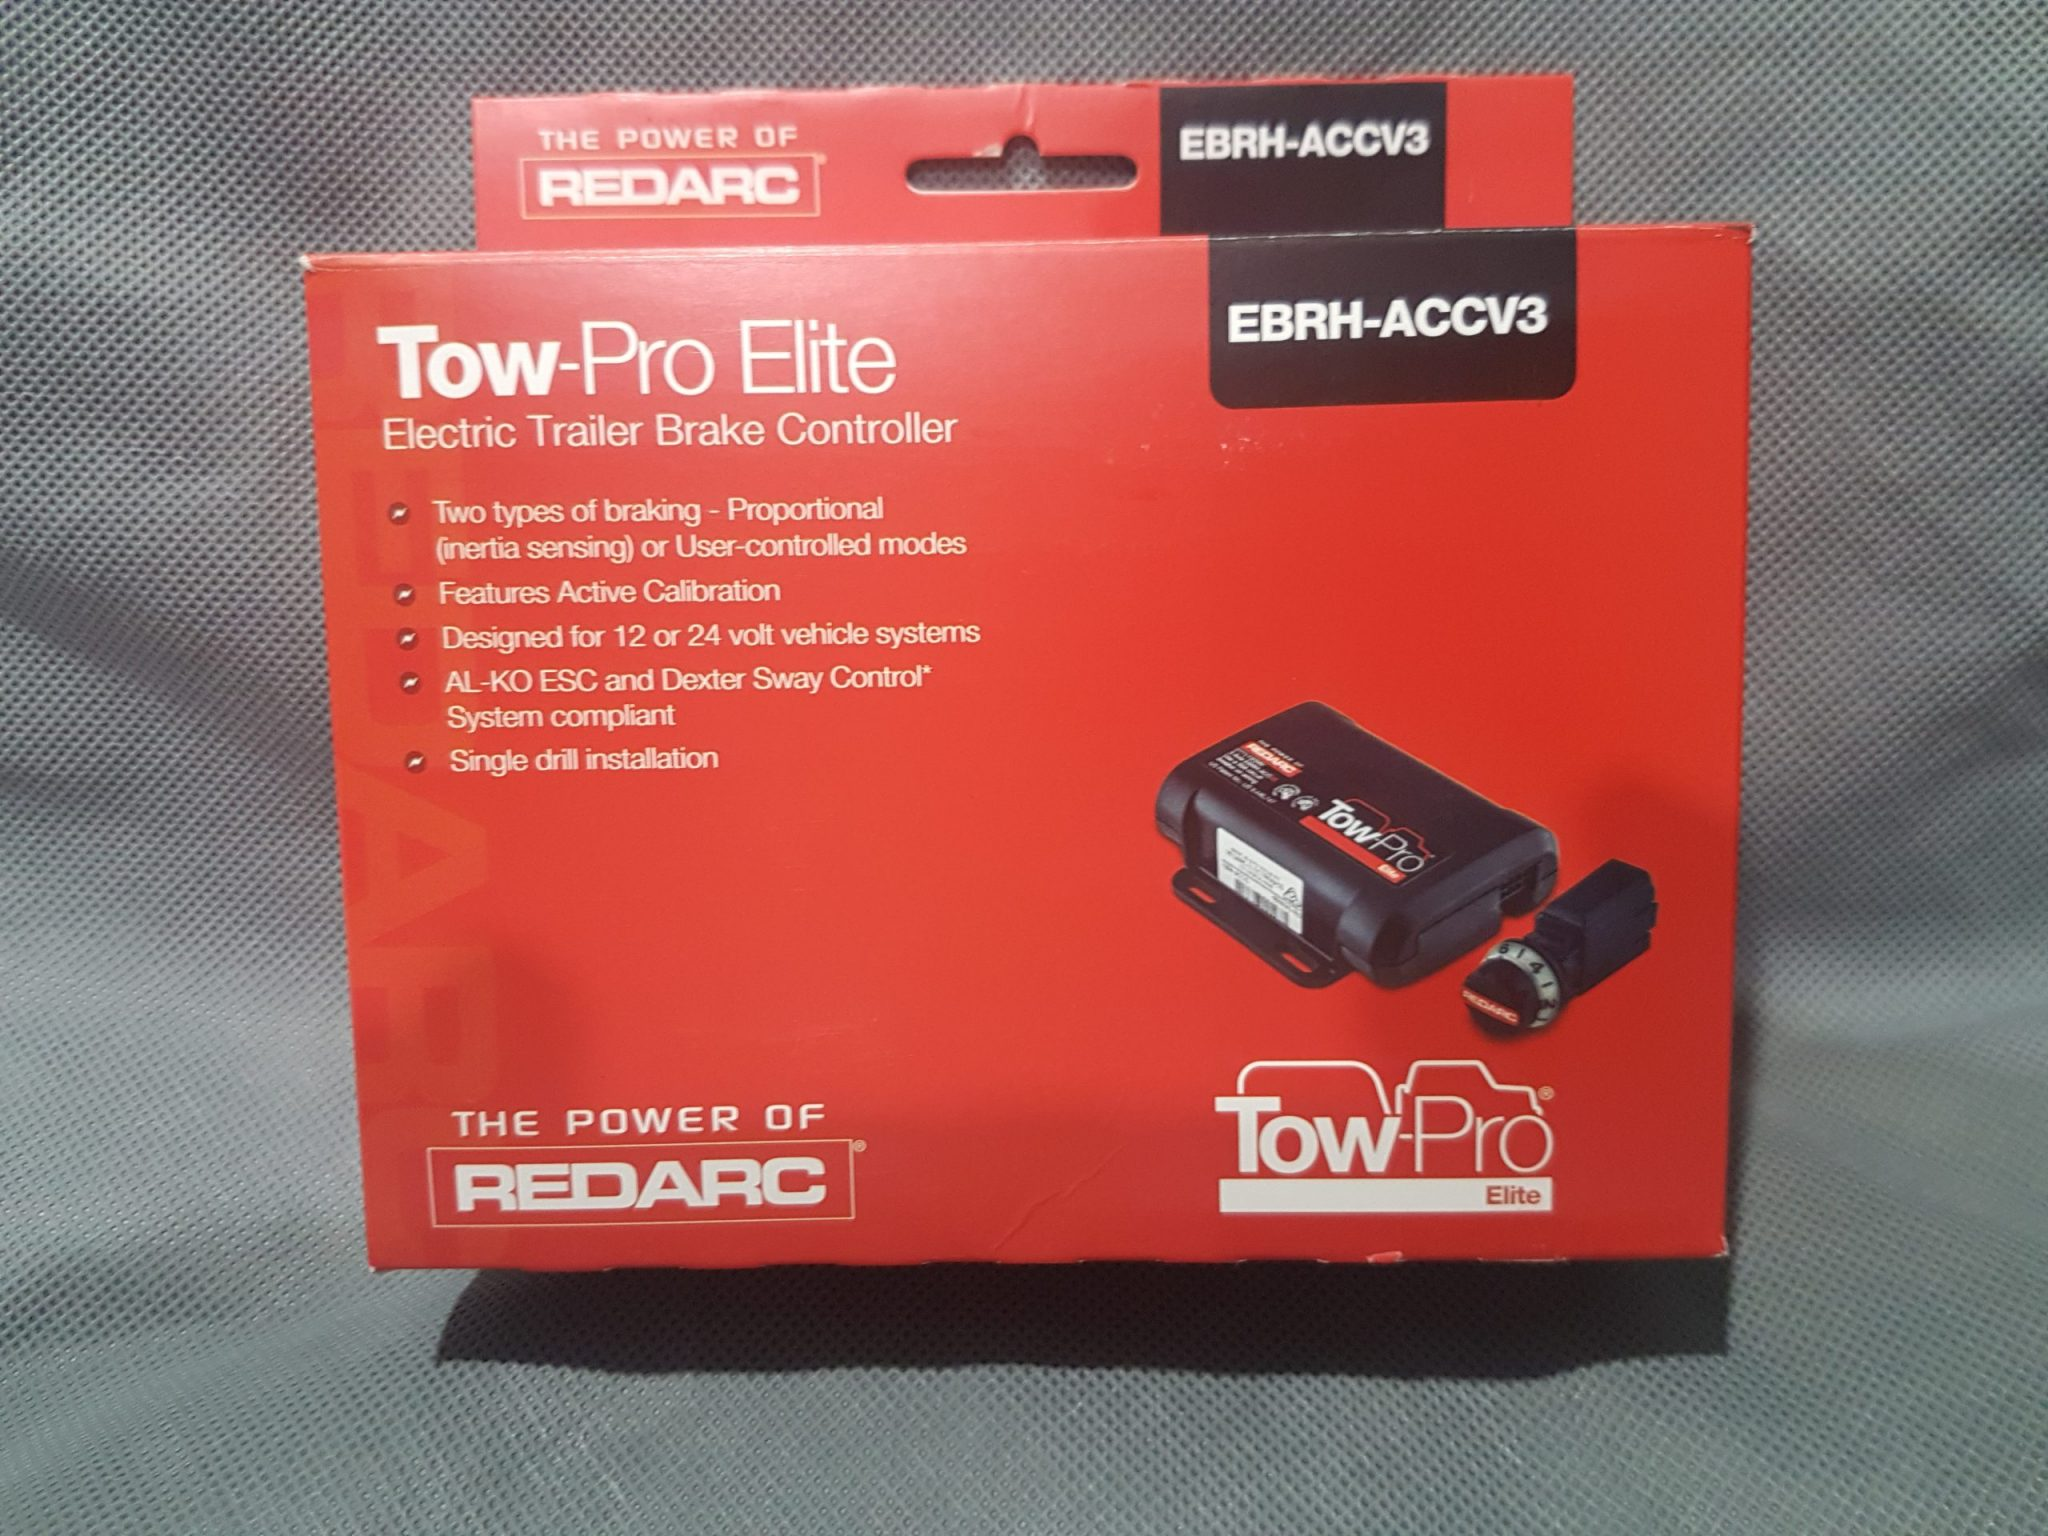 Tow-Pro Elite Electric Trailer Brake Controller